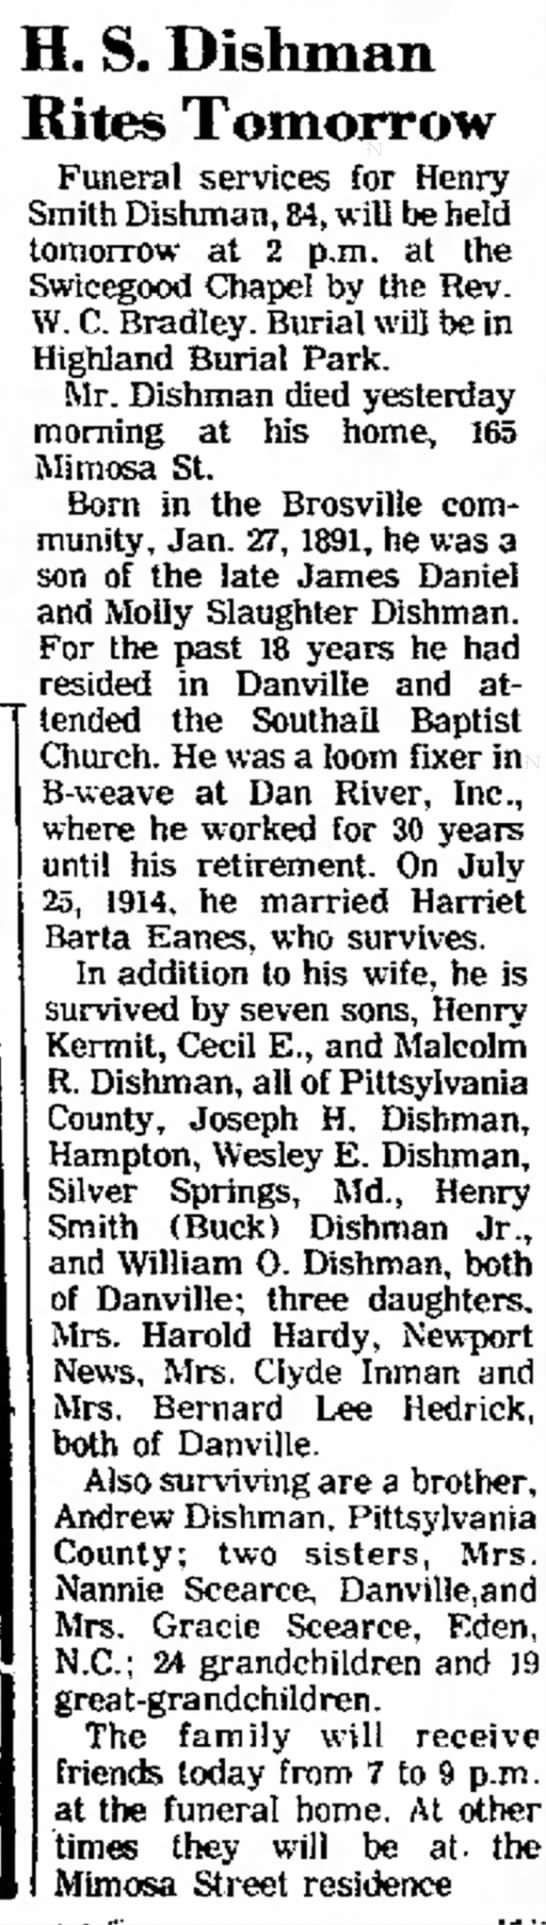 Henry Smith Dishman, brother of Andrew Dishman -